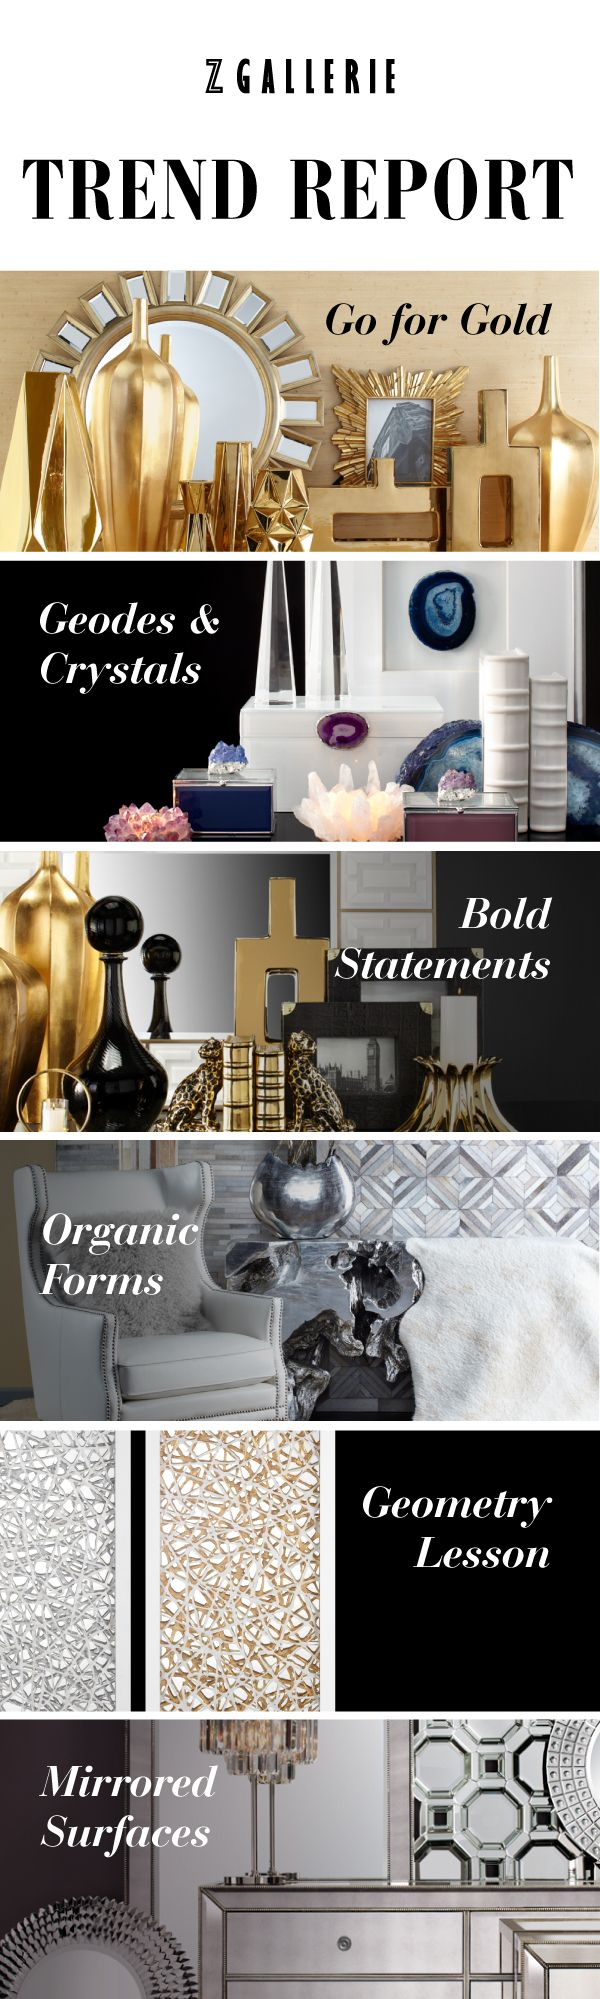 best sophisticated colour new trends images on pinterest